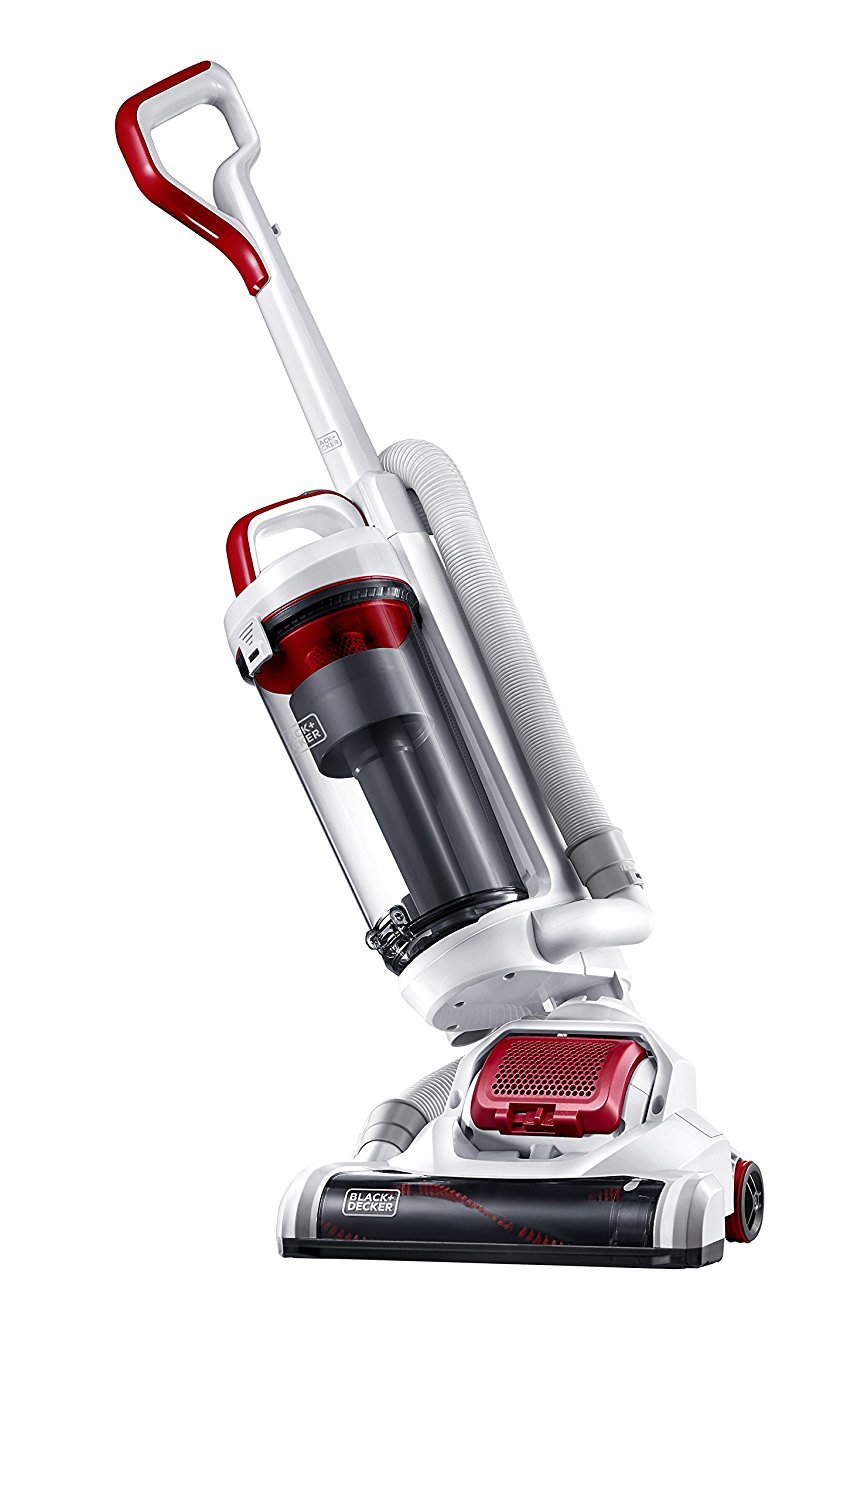 Black Decker Vacuum Cleaner BDASP103 Airswivel Ultra Light Weight Pet 839724012088